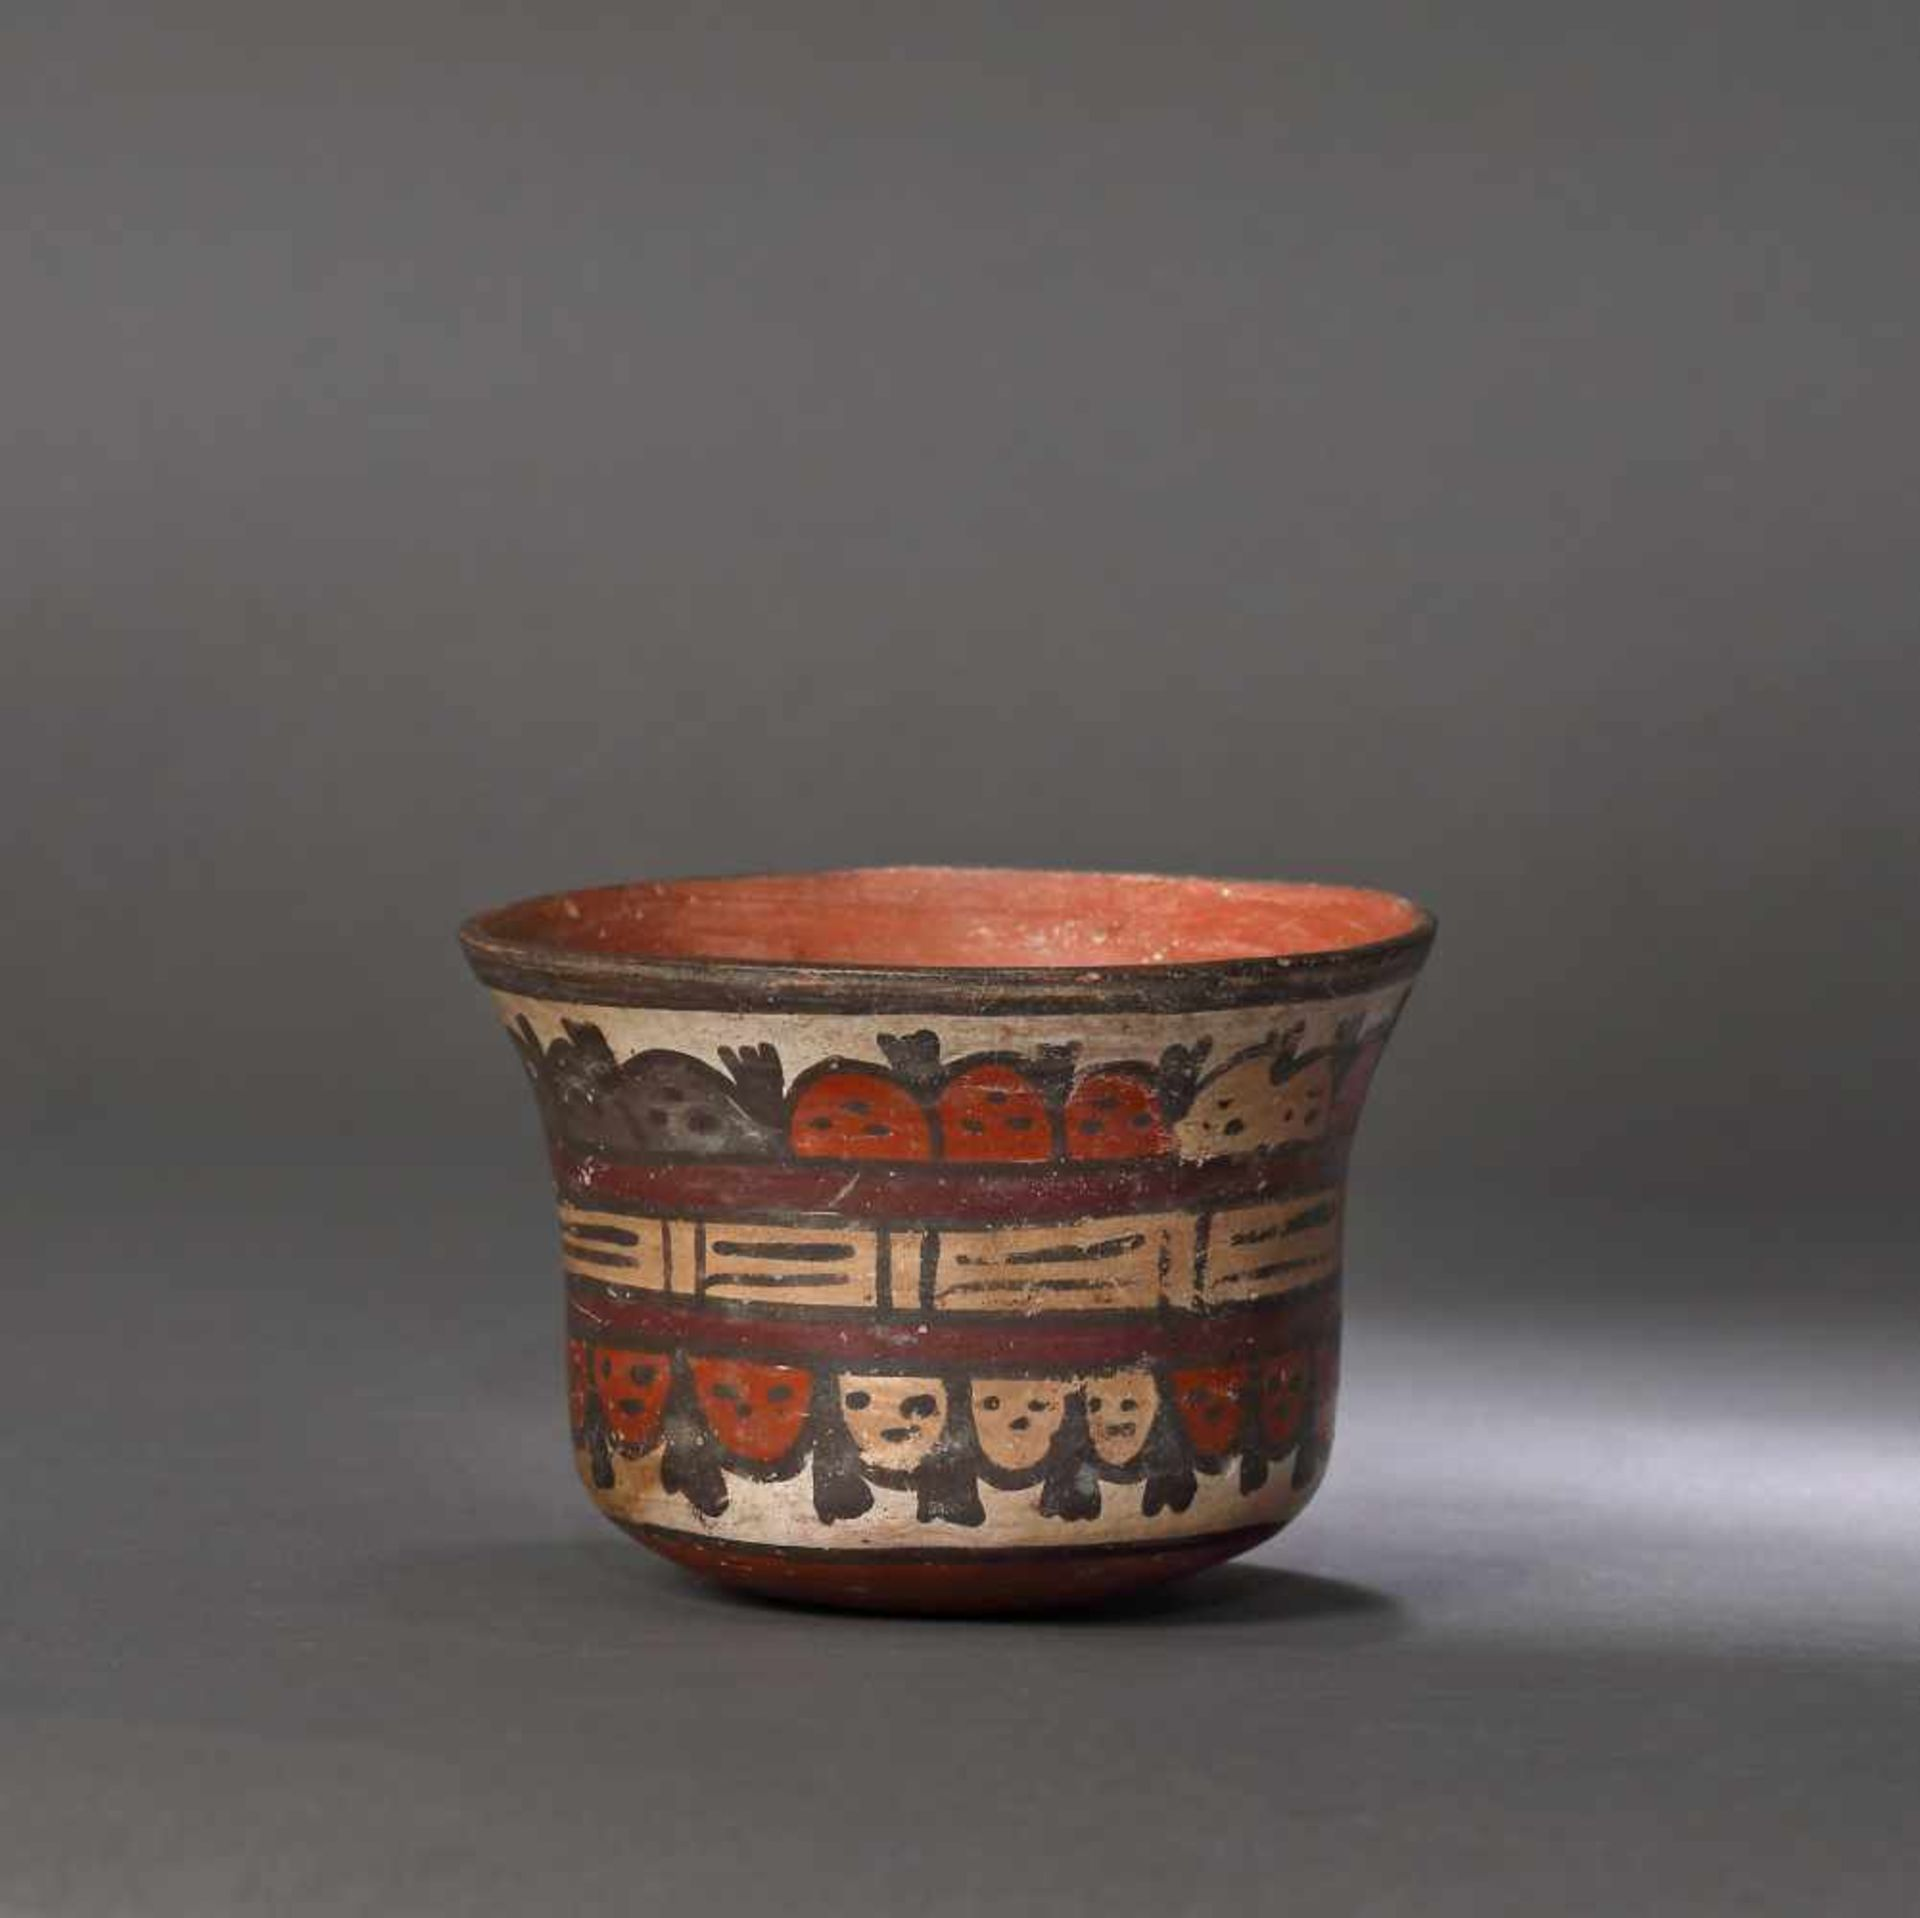 Painted ceramic vessel, decorated with beheaded heads, Nazca culture, Peru, approx. 1,350 years old, - Bild 2 aus 5